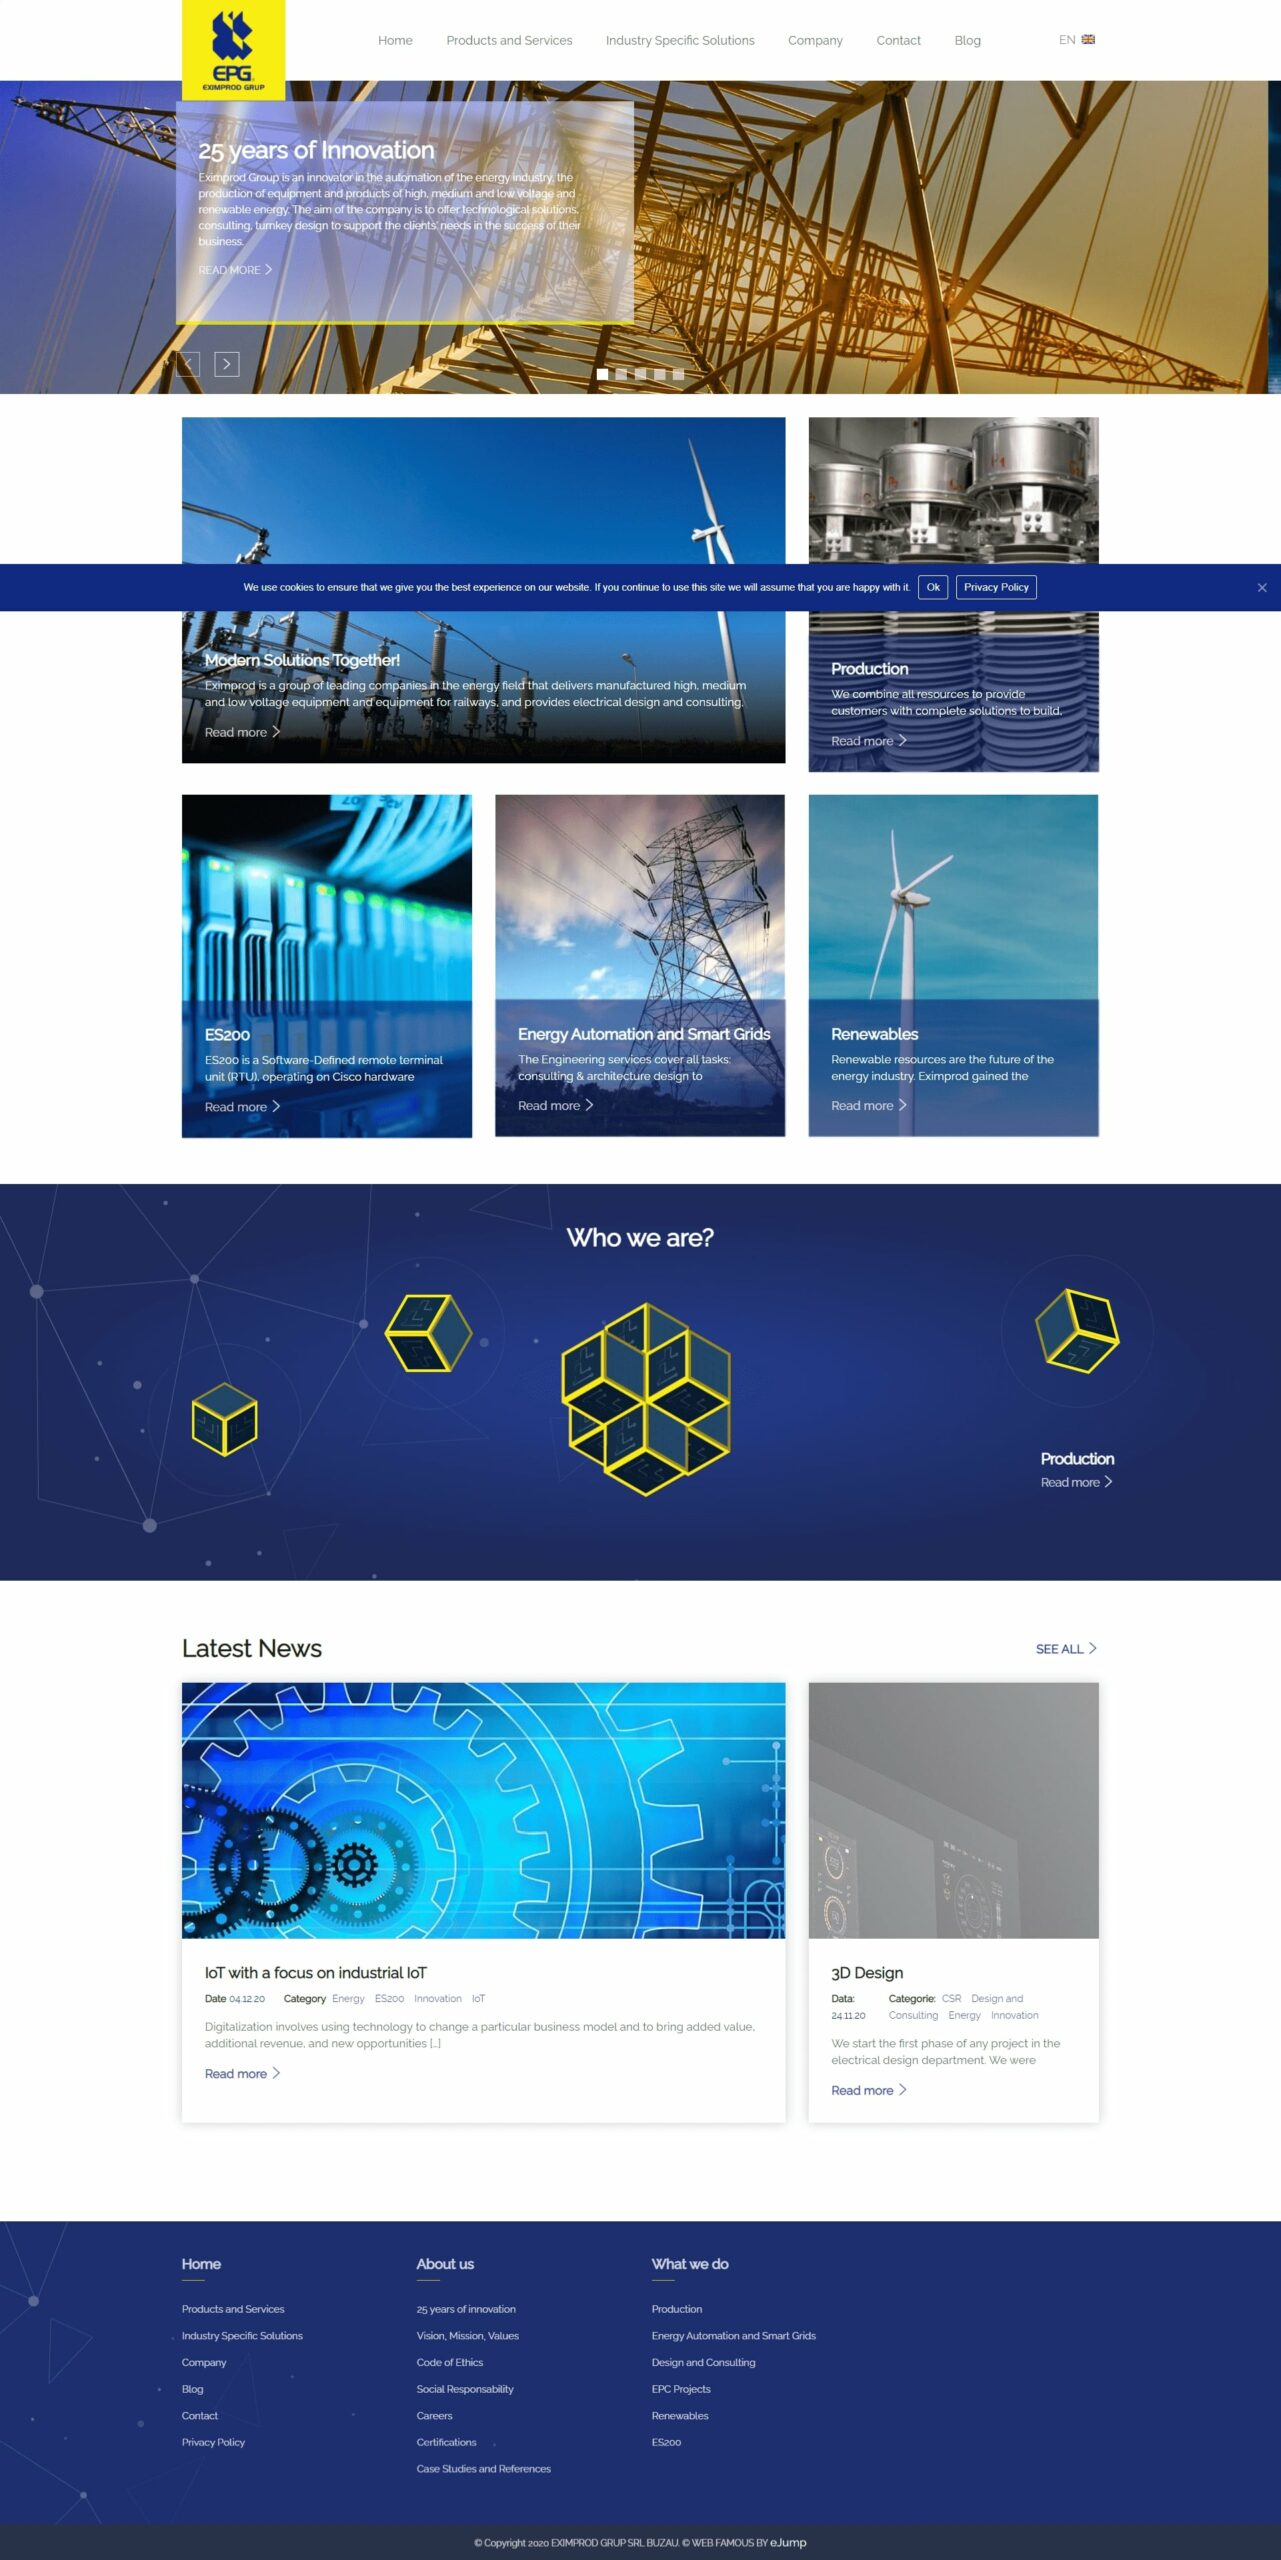 New website redesign and WordPress implementation for an energy industry company